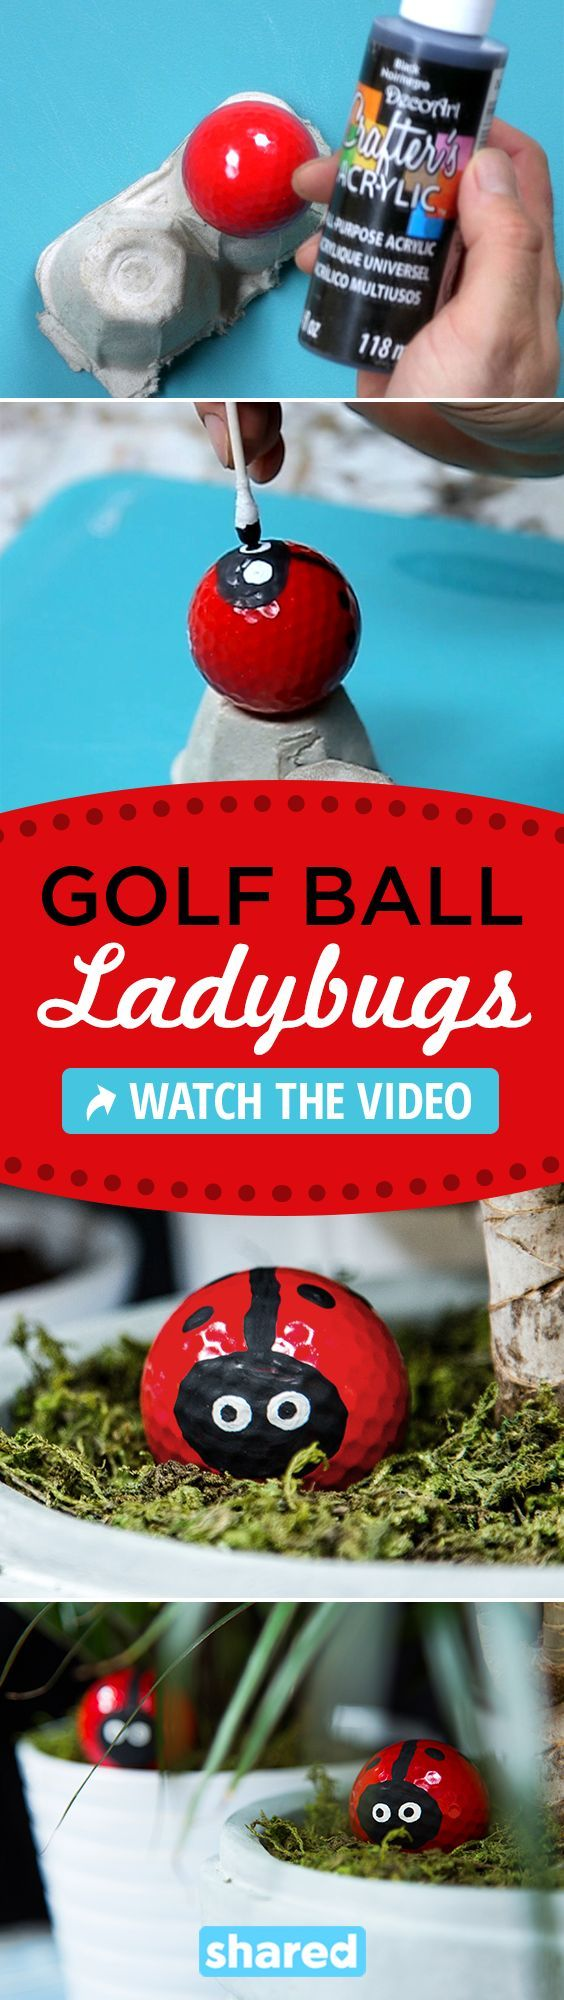 Cute Golf Ball Ladybugs perfect for Christmas decorations! More golf diy crafts at #lorisgolfshoppe